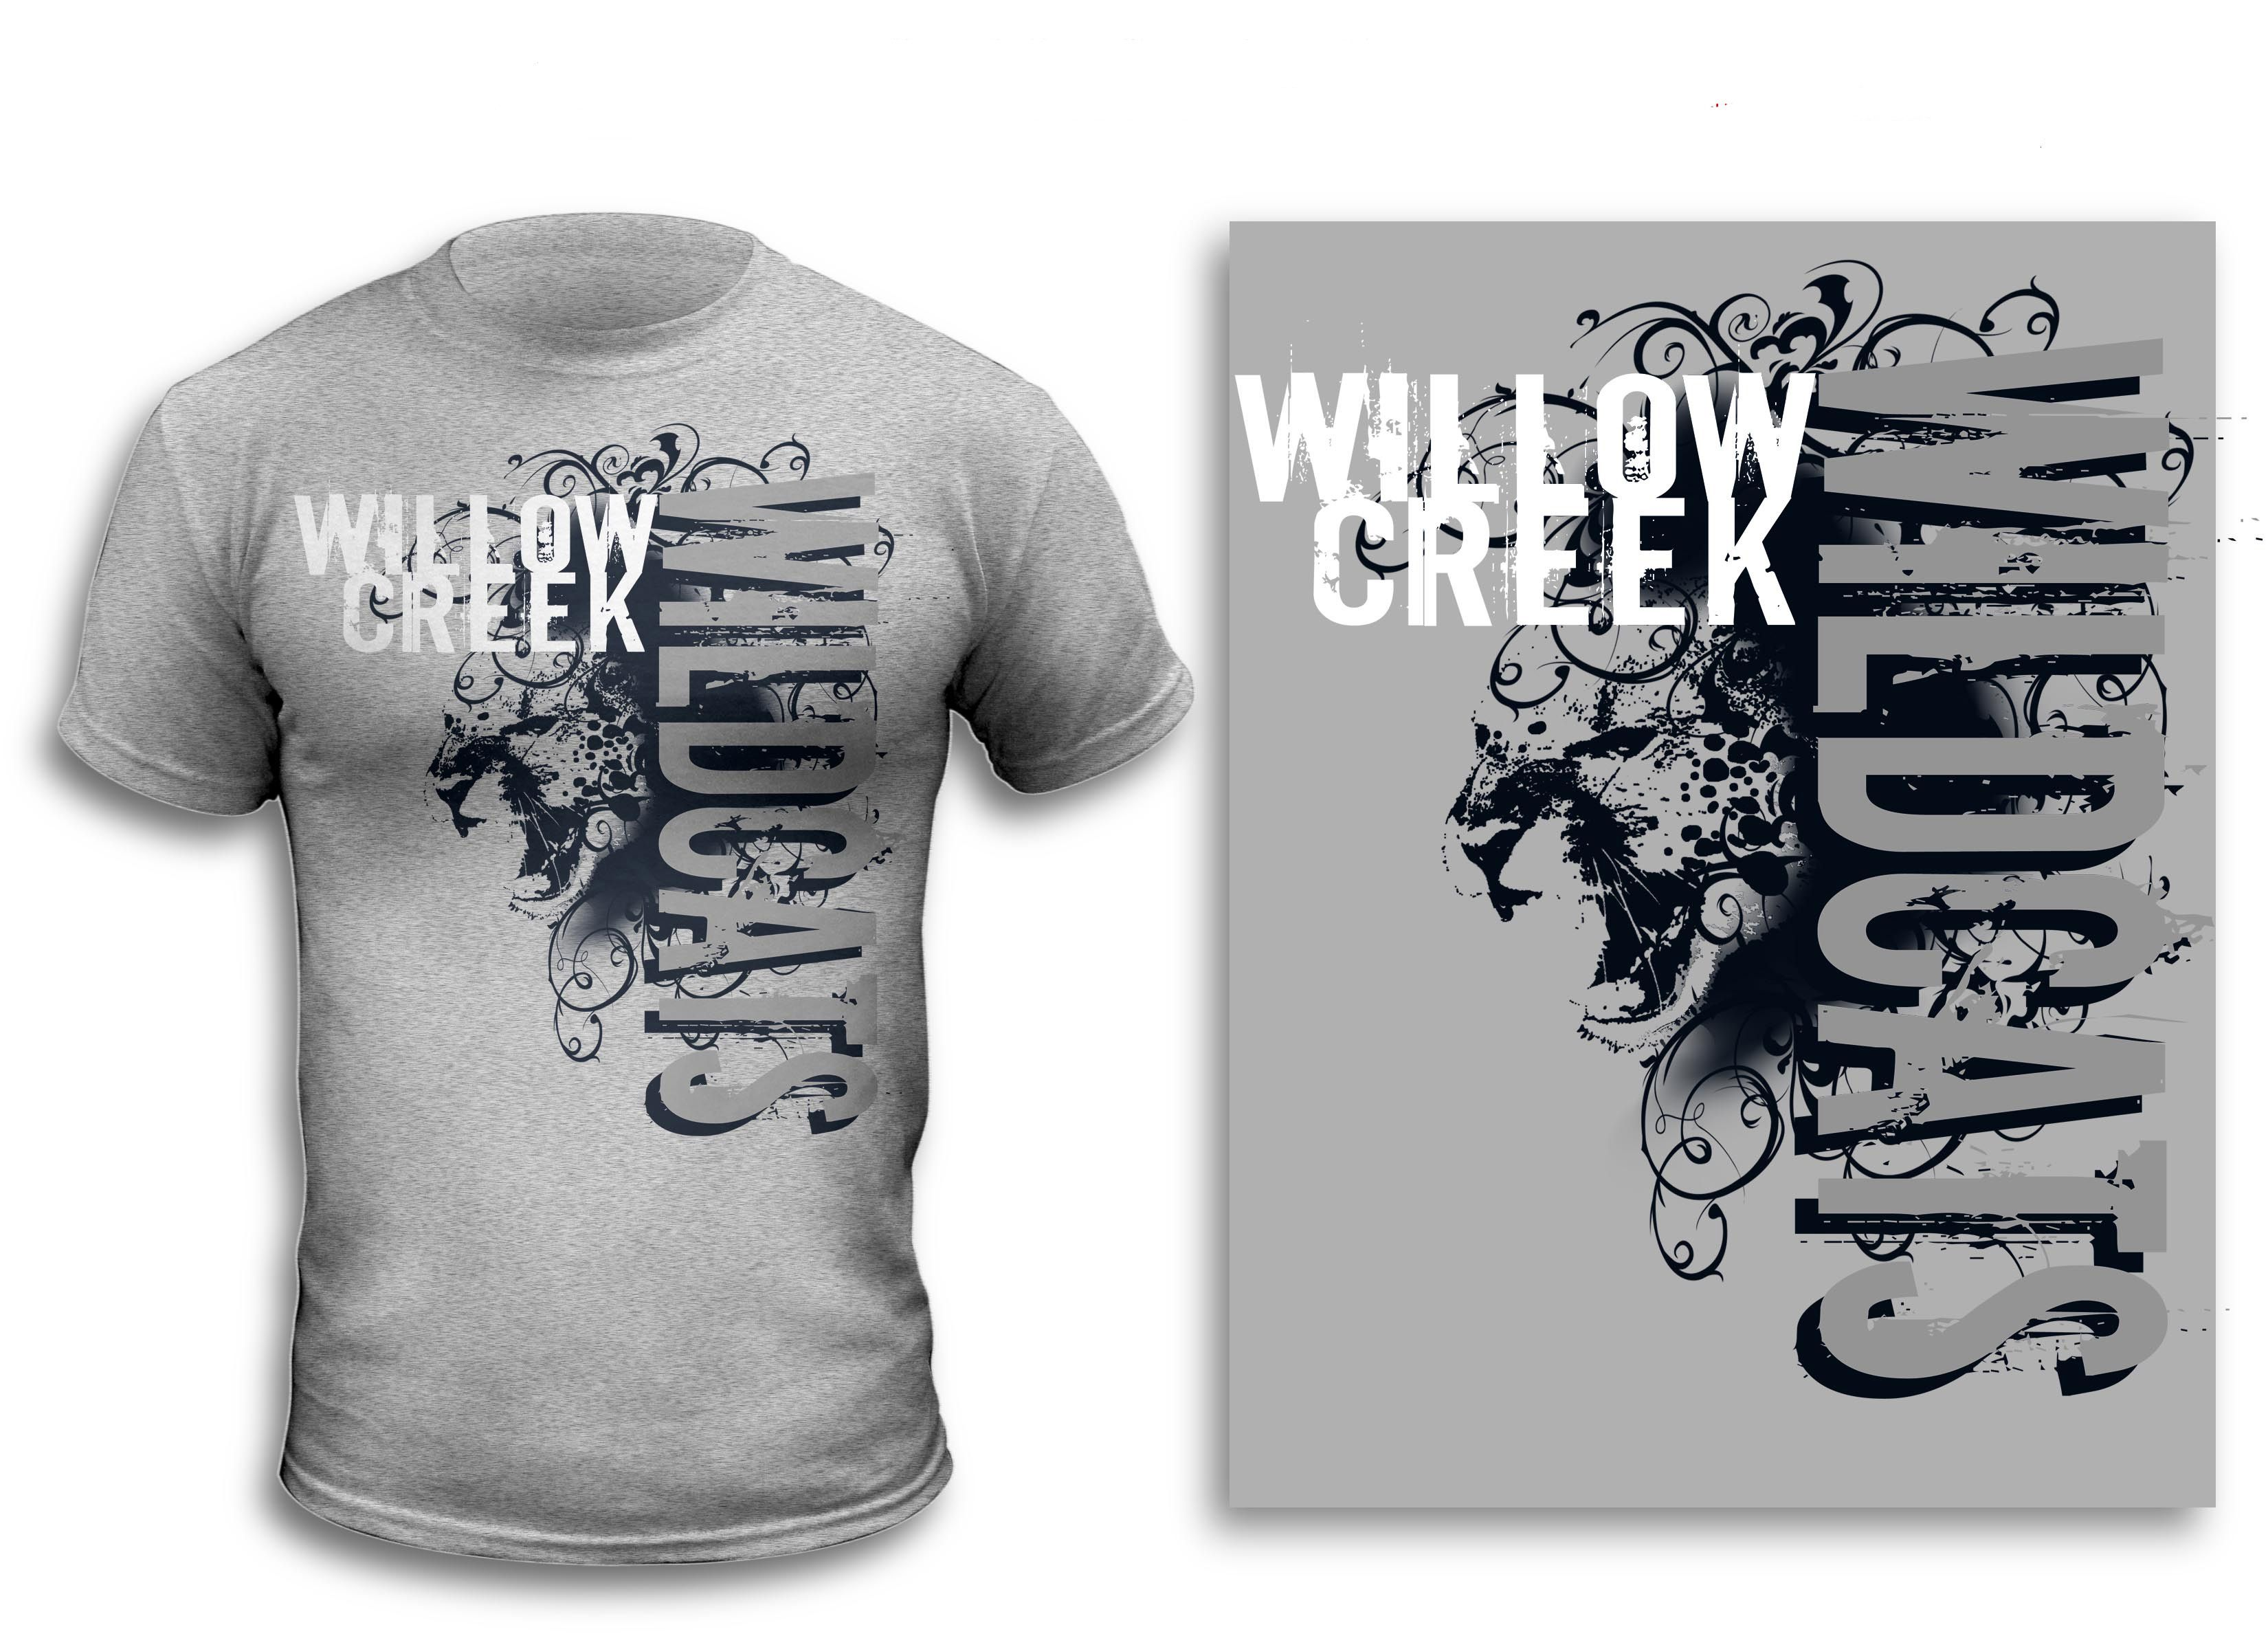 shirt design ideas for school raxoefut - School Spirit T Shirt Design Ideas